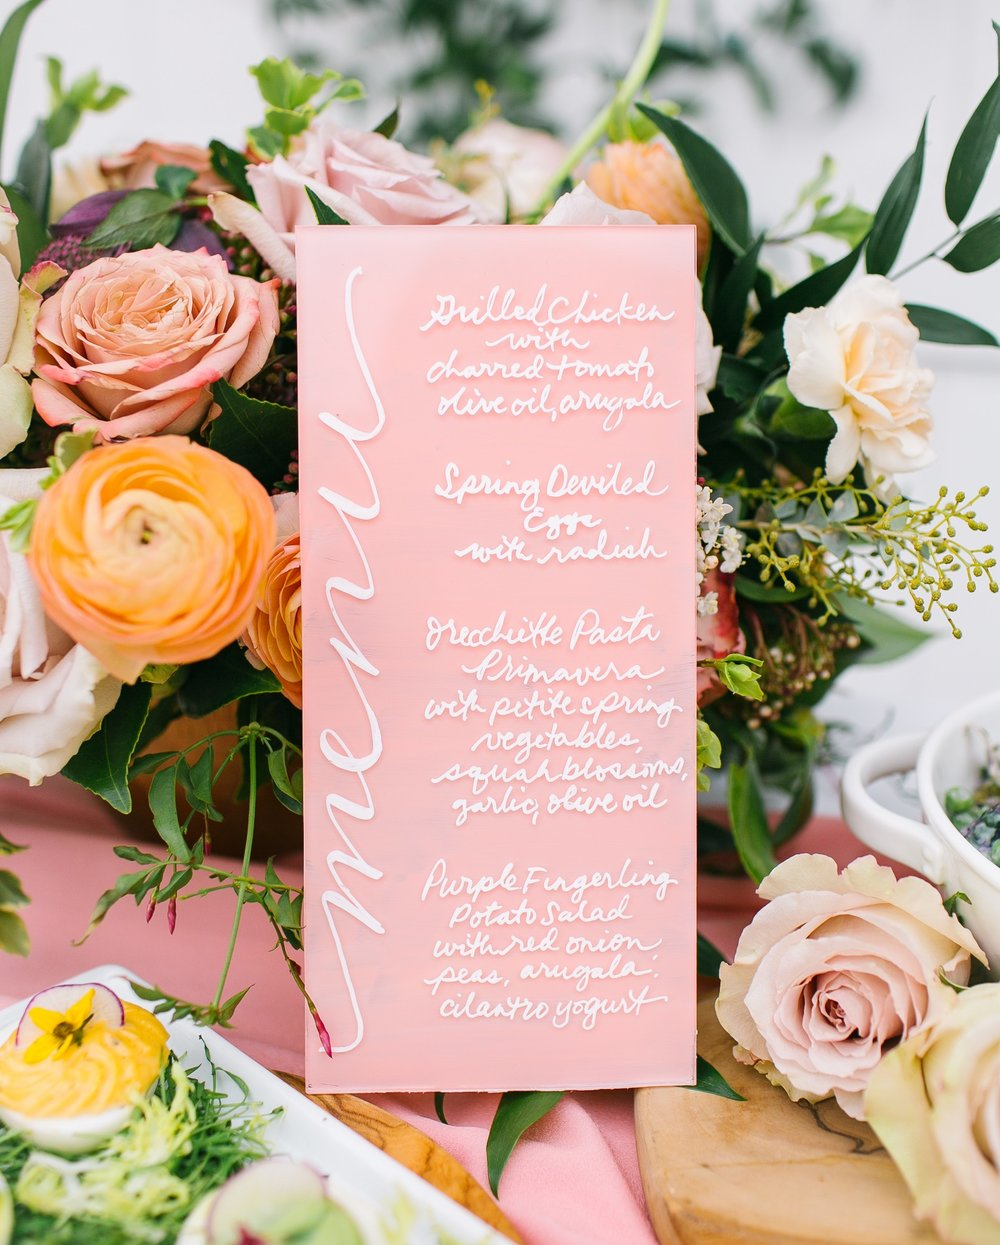 Easter table menu calligraphy stationery idea